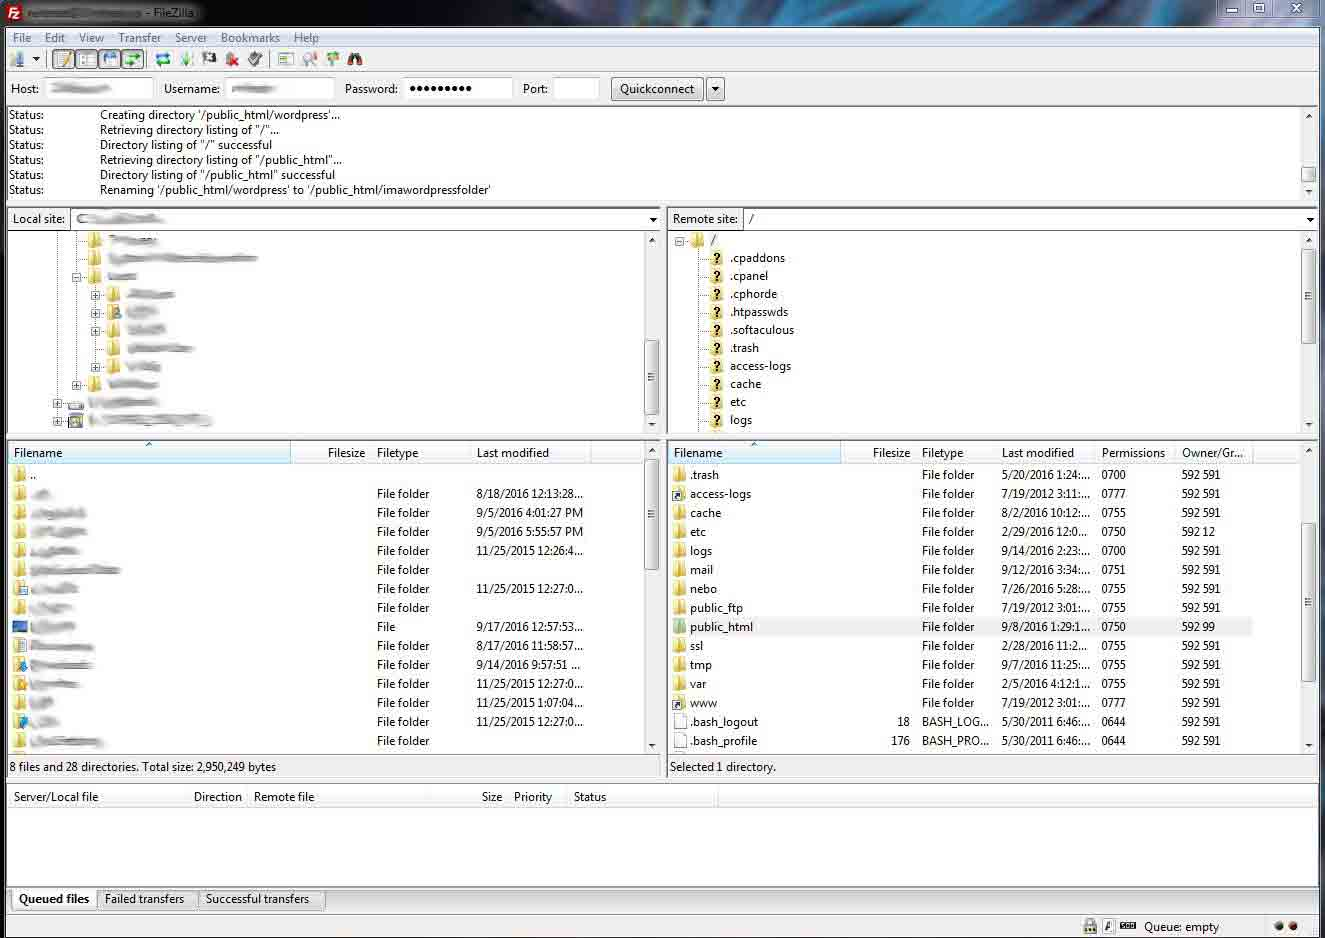 filezilla ftp public_html neutron dev